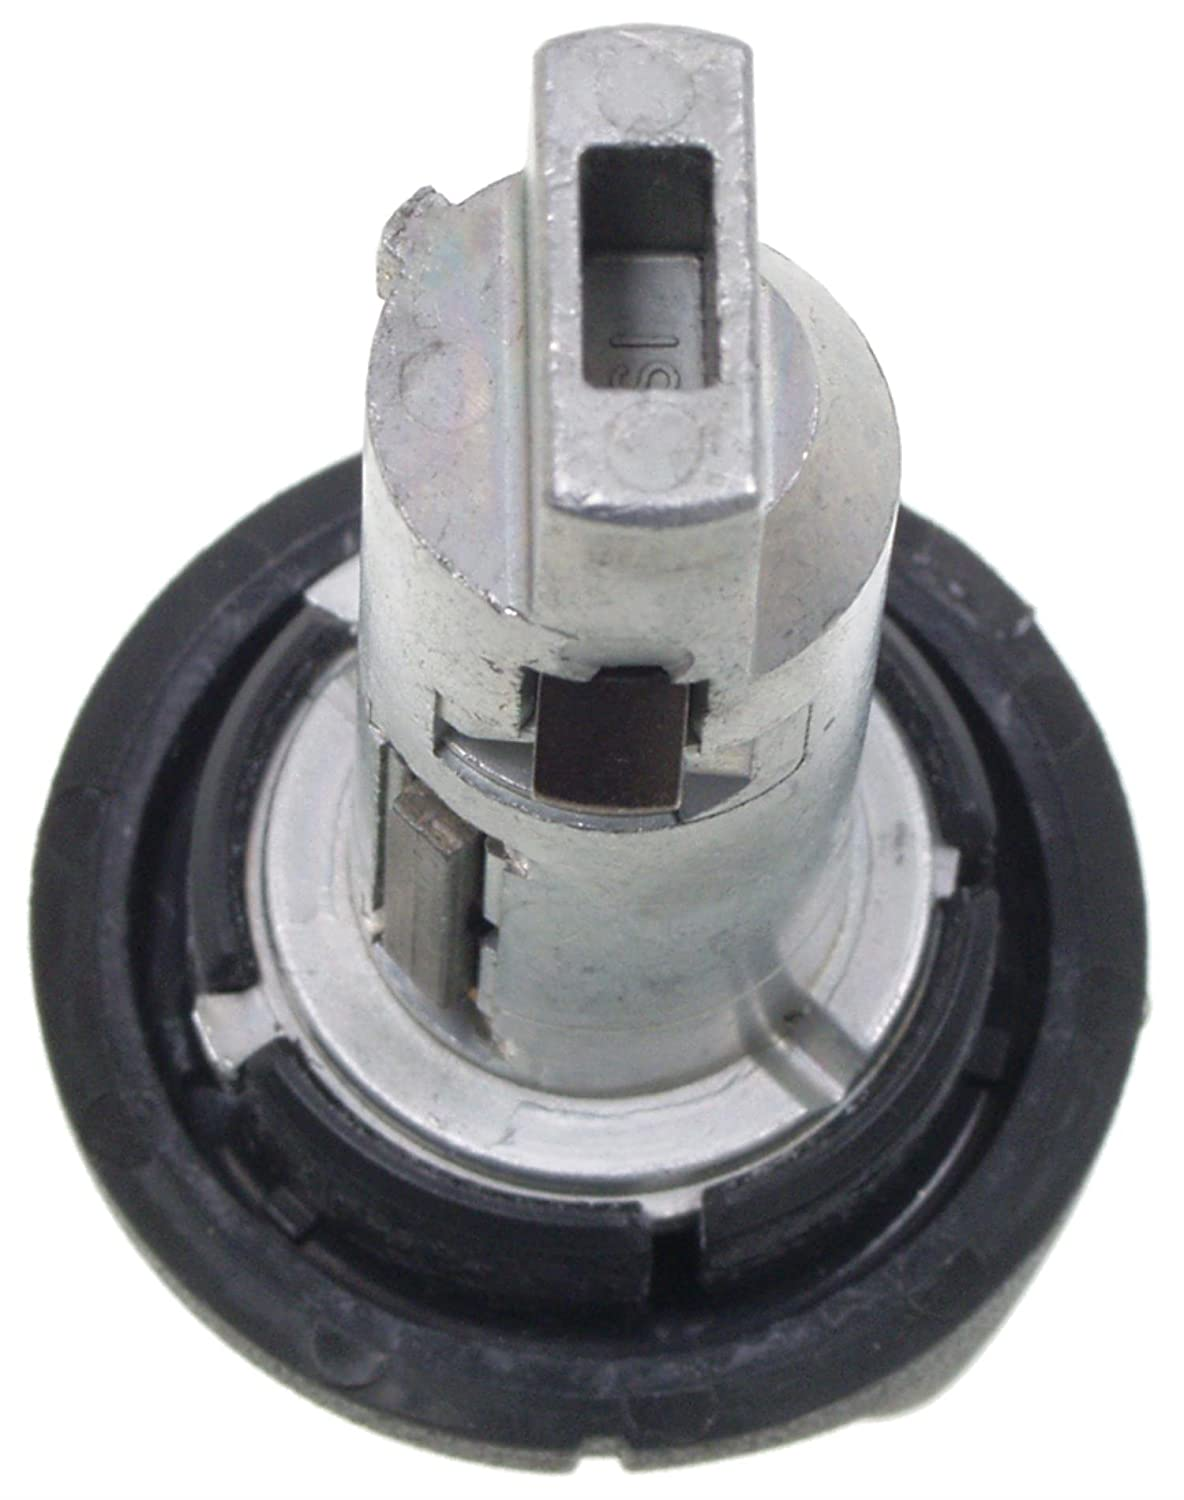 ACDelco D1496G Professional Ignition Lock Cylinder with Key